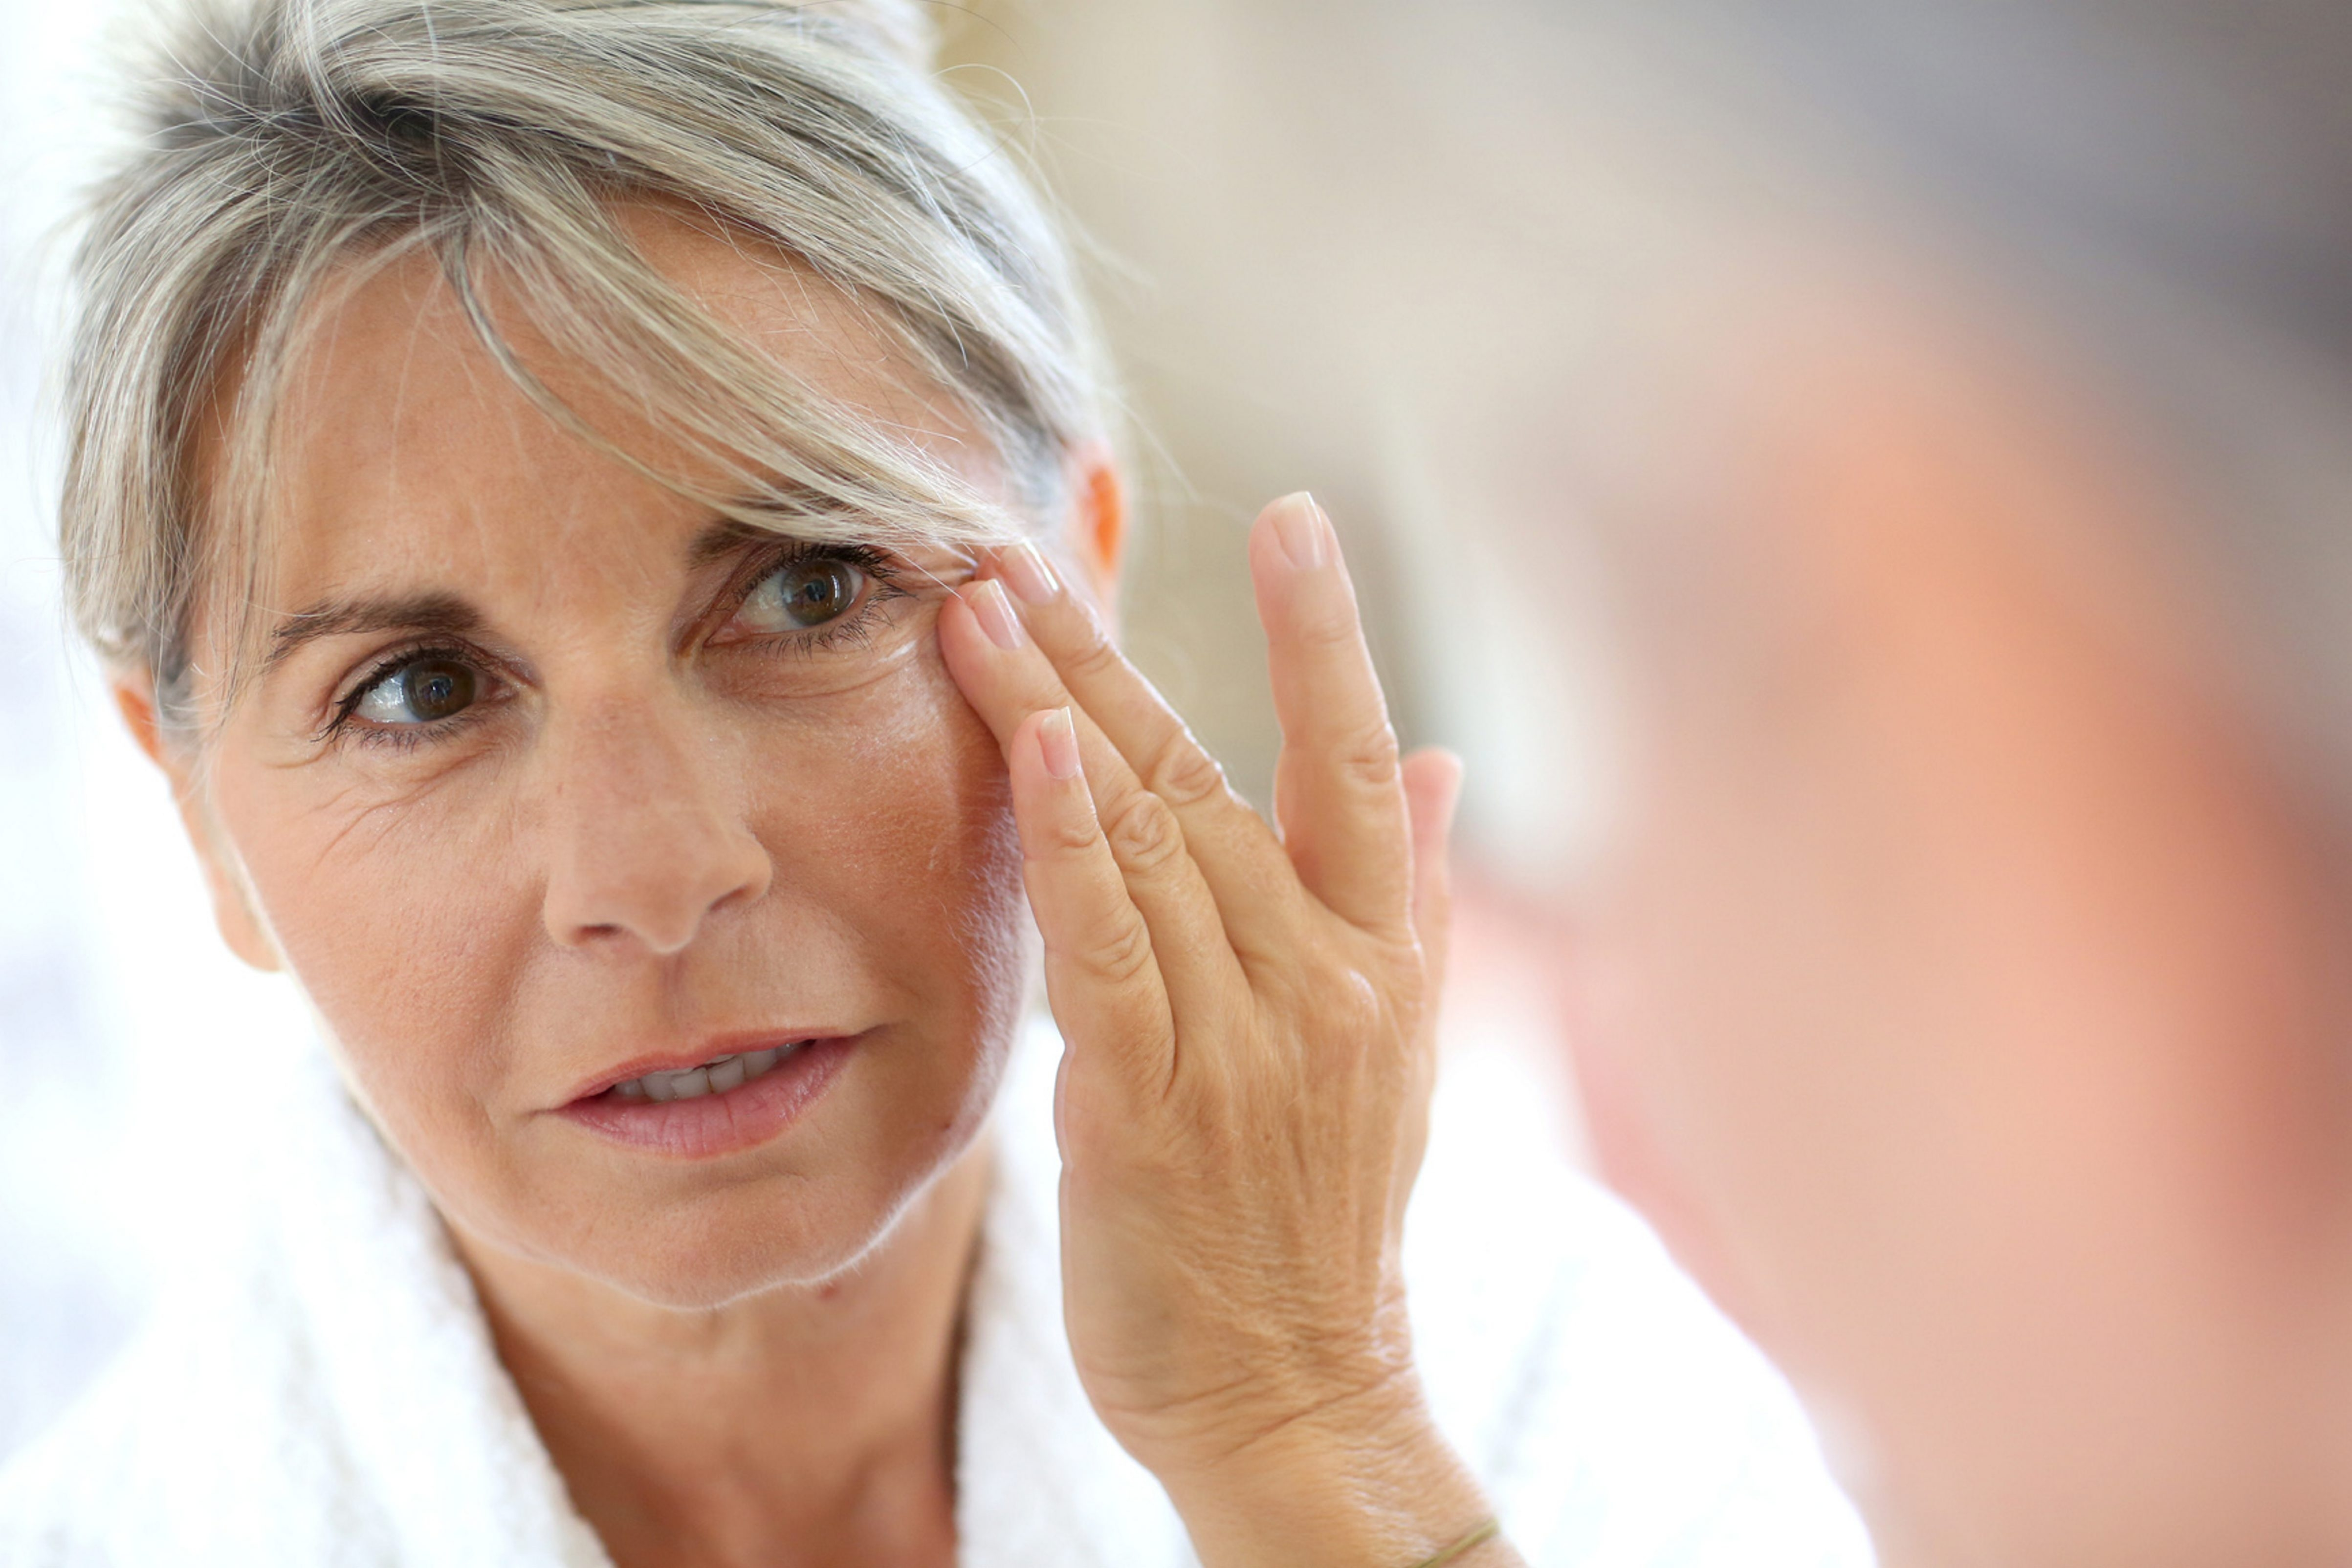 Wearing adequate sunscreen can slow the pace of further skin damage.